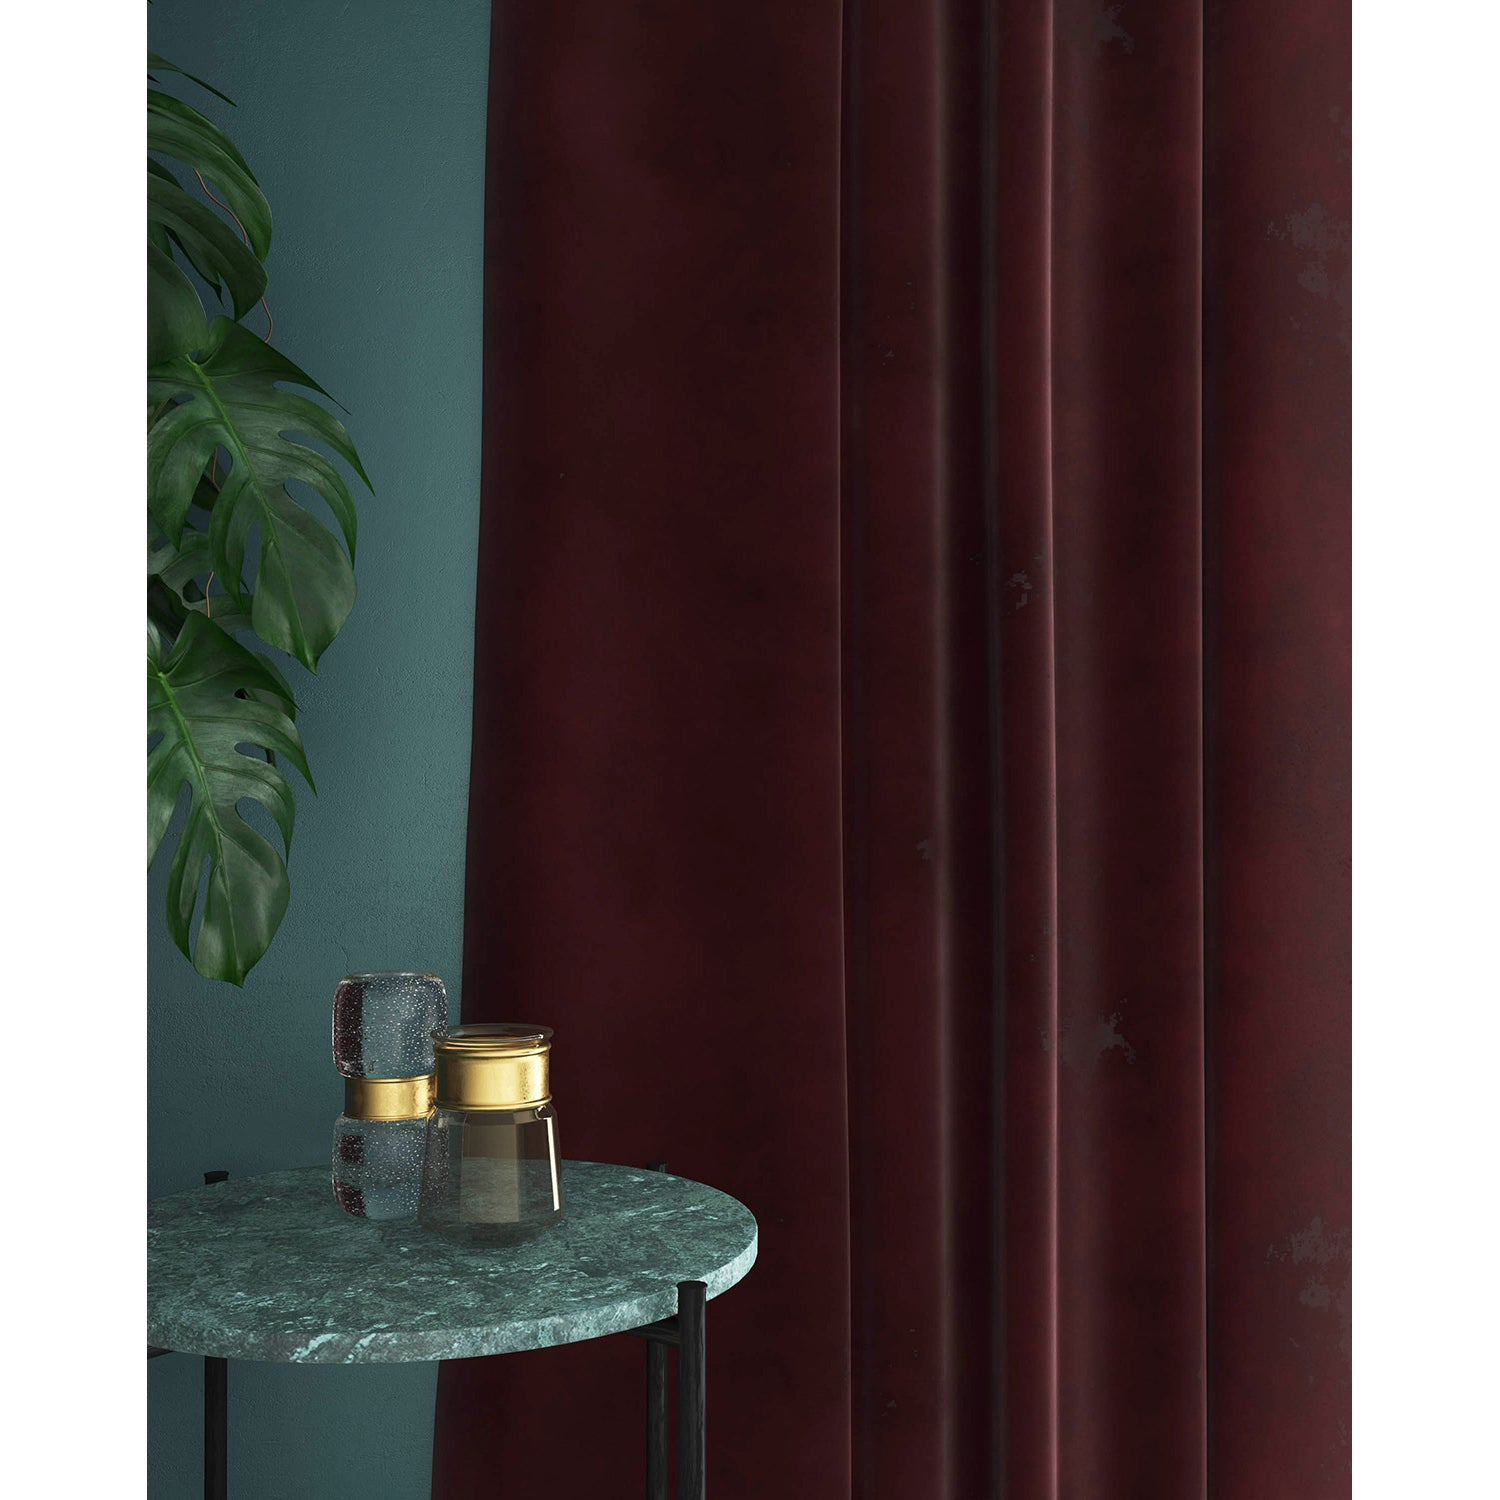 Curtain in a plain deep copper velvet fabric with a stain resistant finish